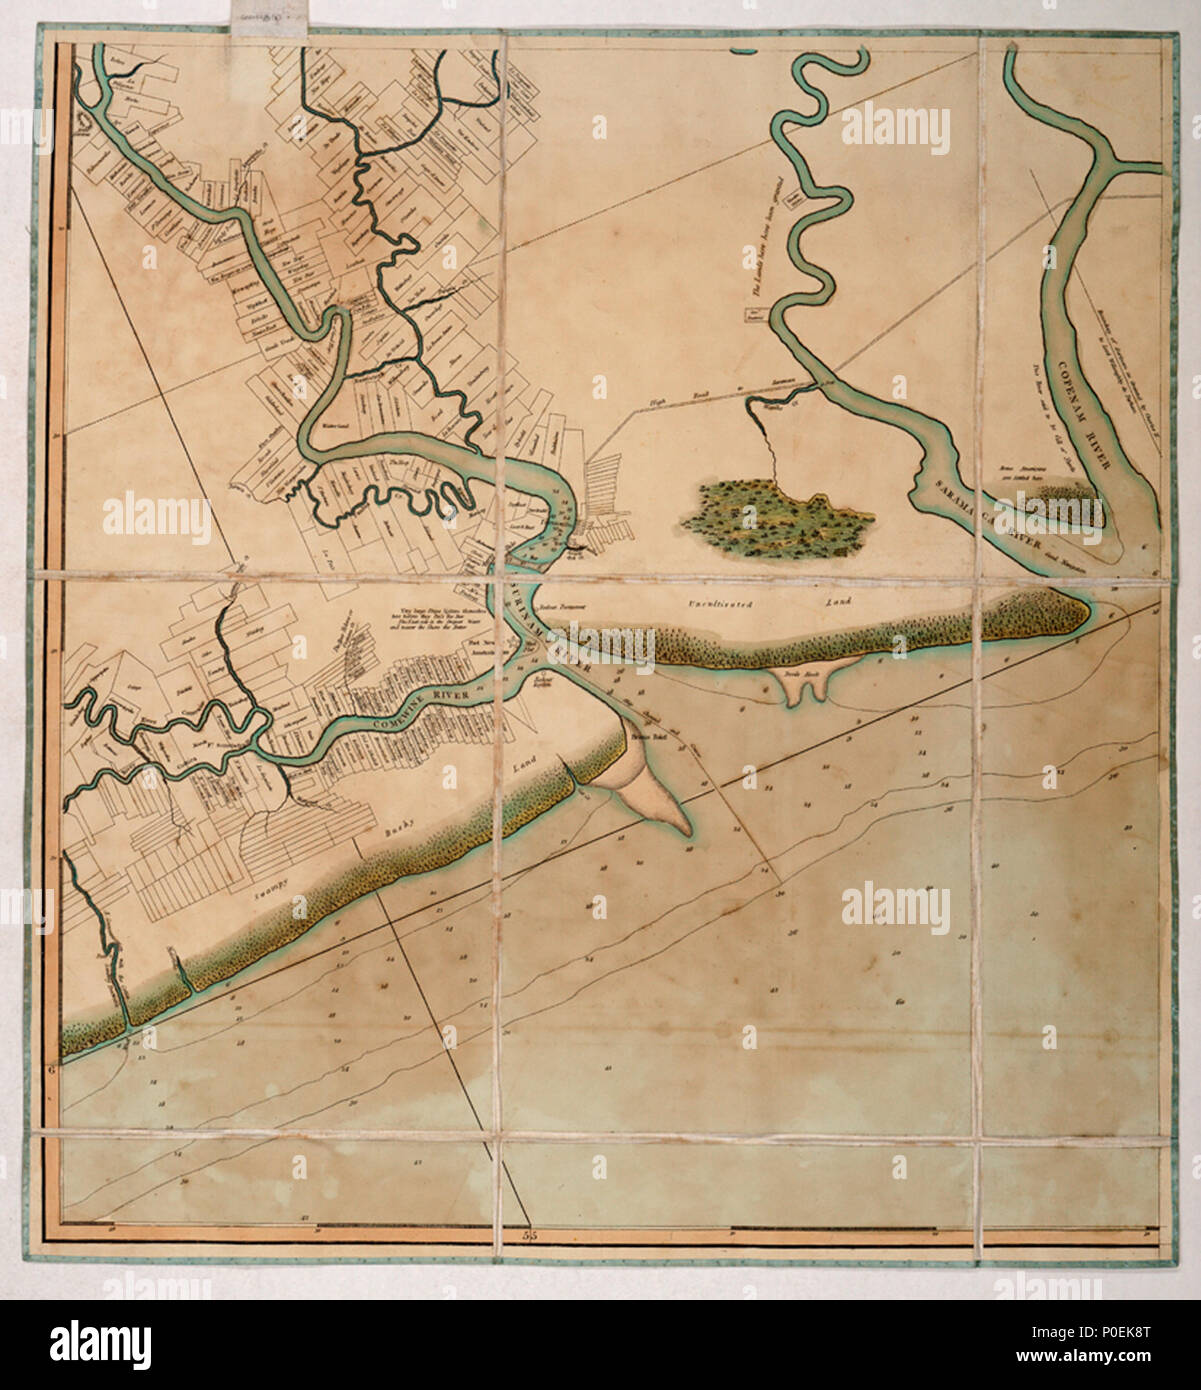 .  English: A chart of the colony of Surinam, on the coast of Guyana.Four sheets. Hand col. engr. Medium: Segmented and backed. Scale: 1:200 000 (bar). Cartographic Note: North at 336 degrees. Graduated. Soundings and seabed soundings shown. Scale in nautical miles. Additional Places: Suriname, Commewijne River, Corantijn River. Contents Note: Property boundaries and vegetation are shown on the land, Sailing directions include a note about dangerous banks where the Thorn Sloop of War ran aground in 1796 and was obliged to throw her guns overboard. Gren82/3(3) A chart of the colony of Surinam,  - Stock Image